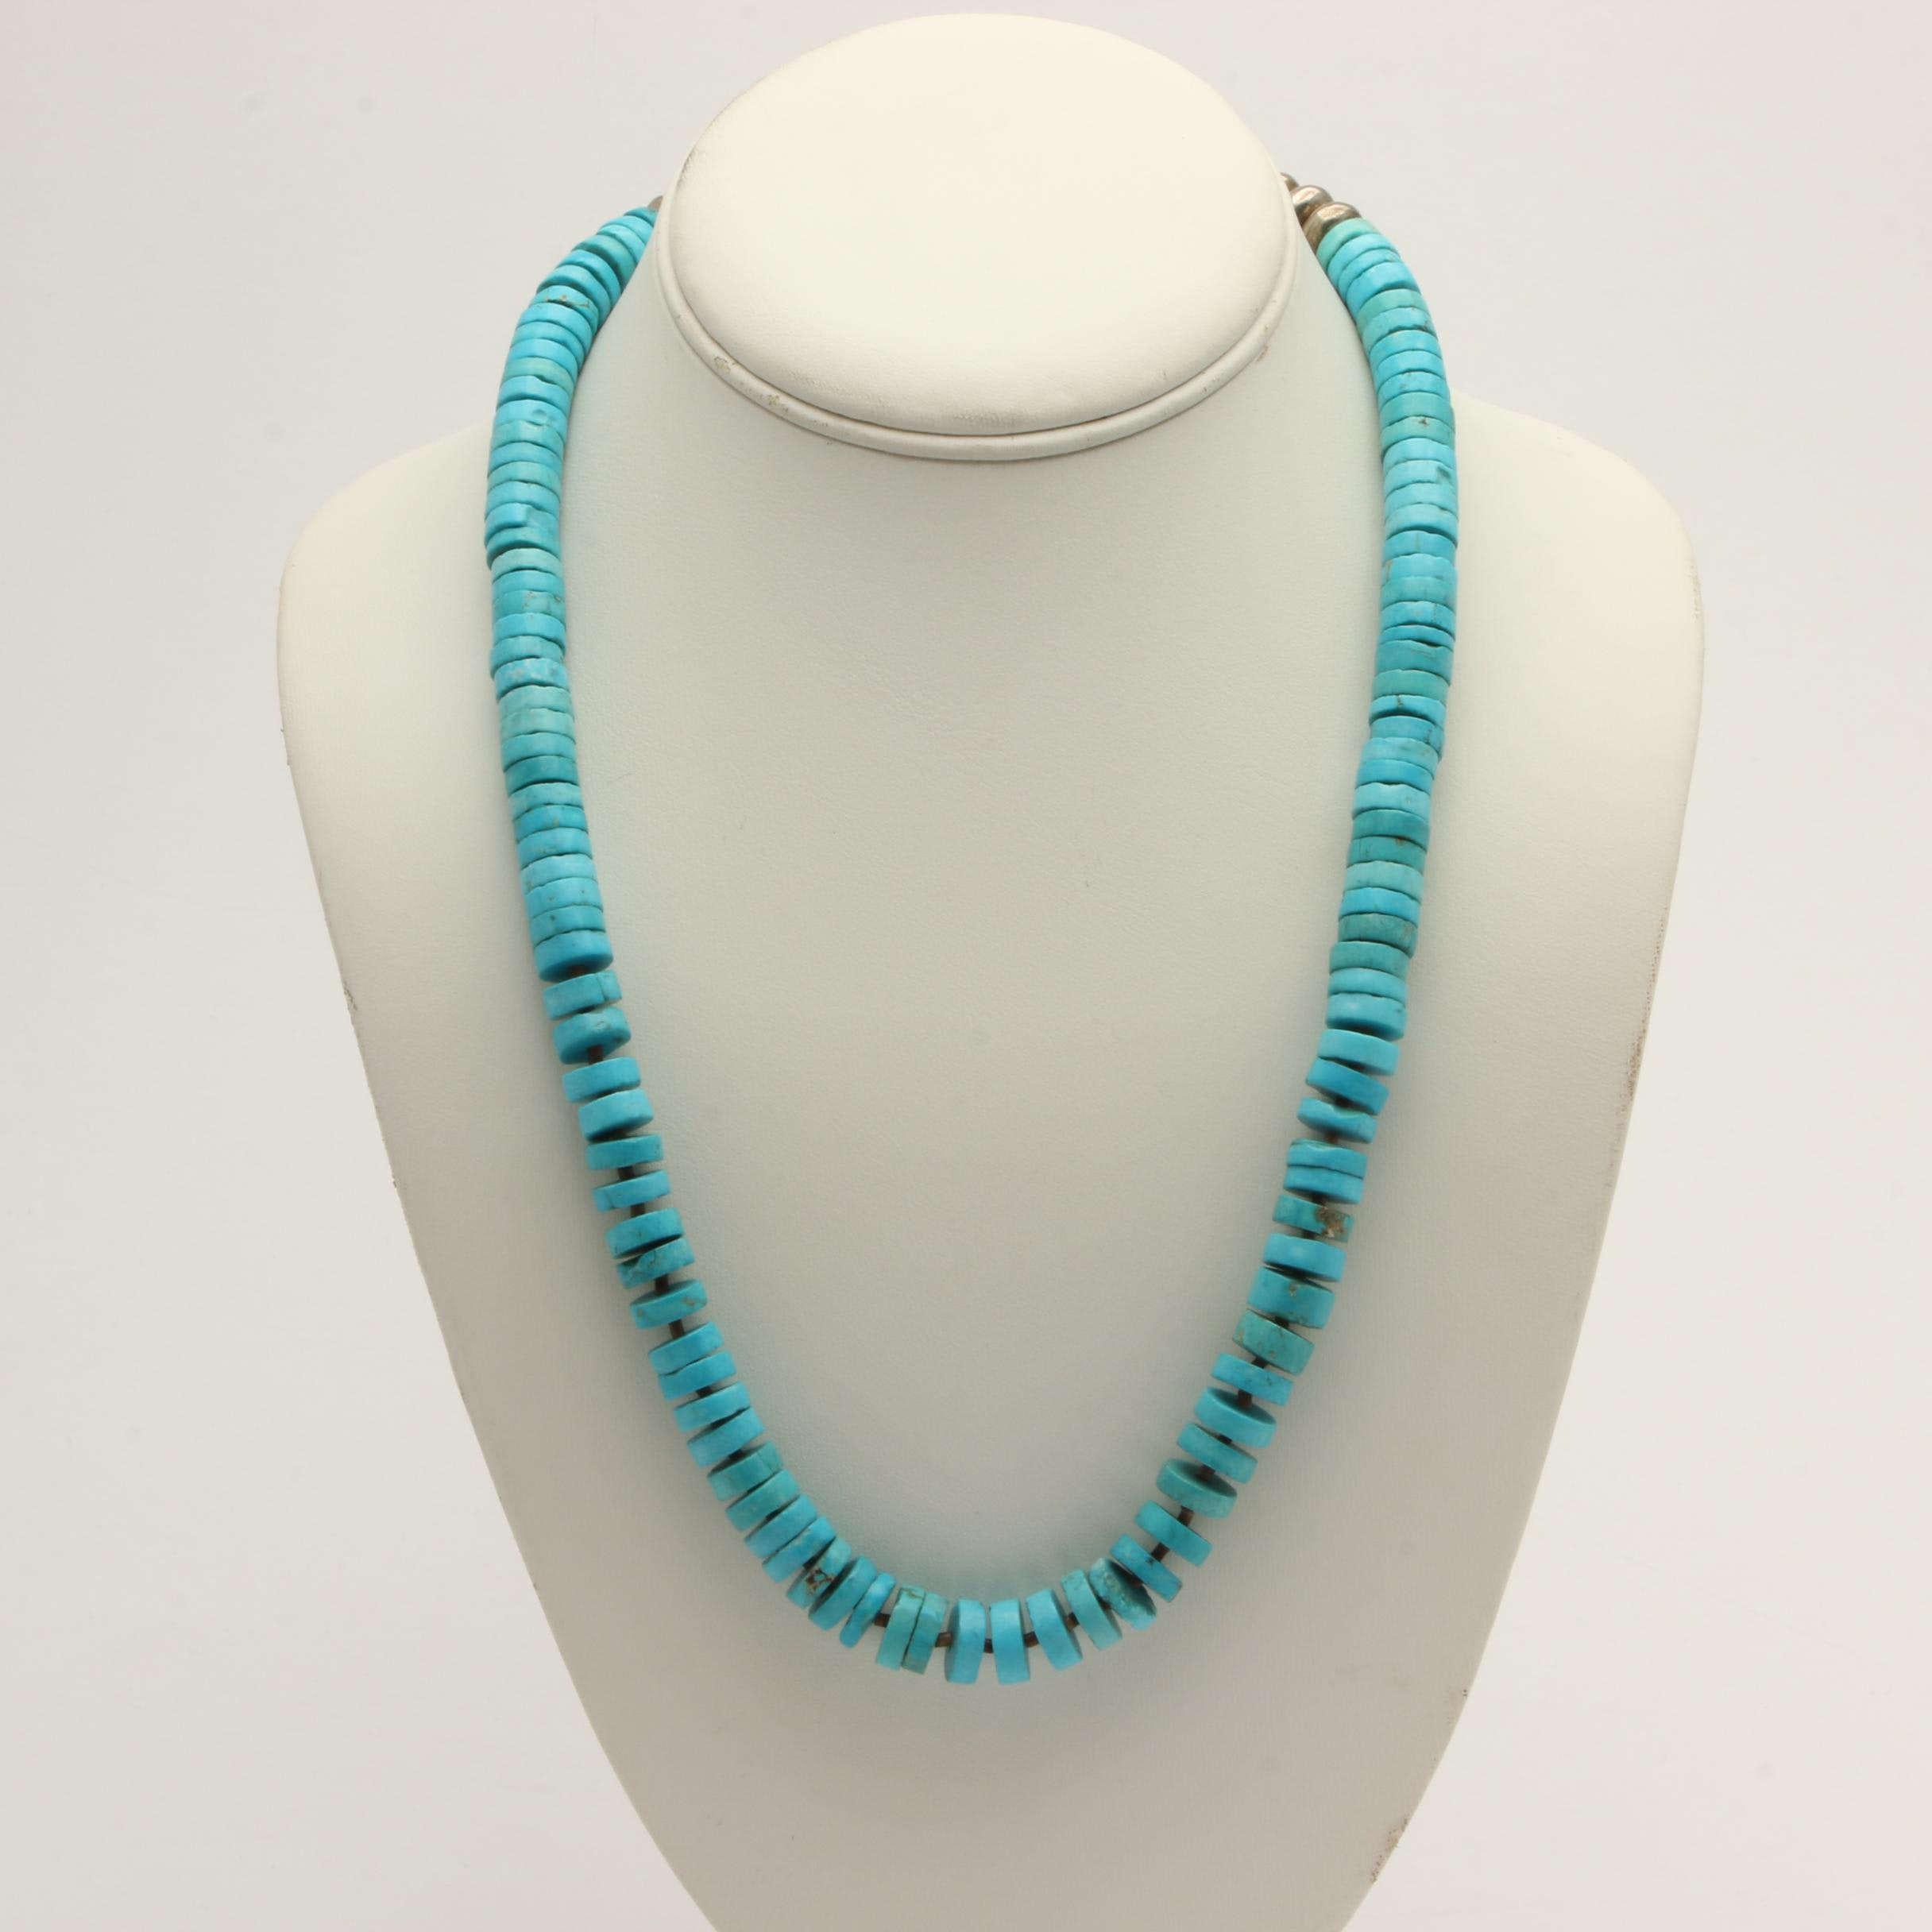 Silver Tone Turquoise Bead Necklace